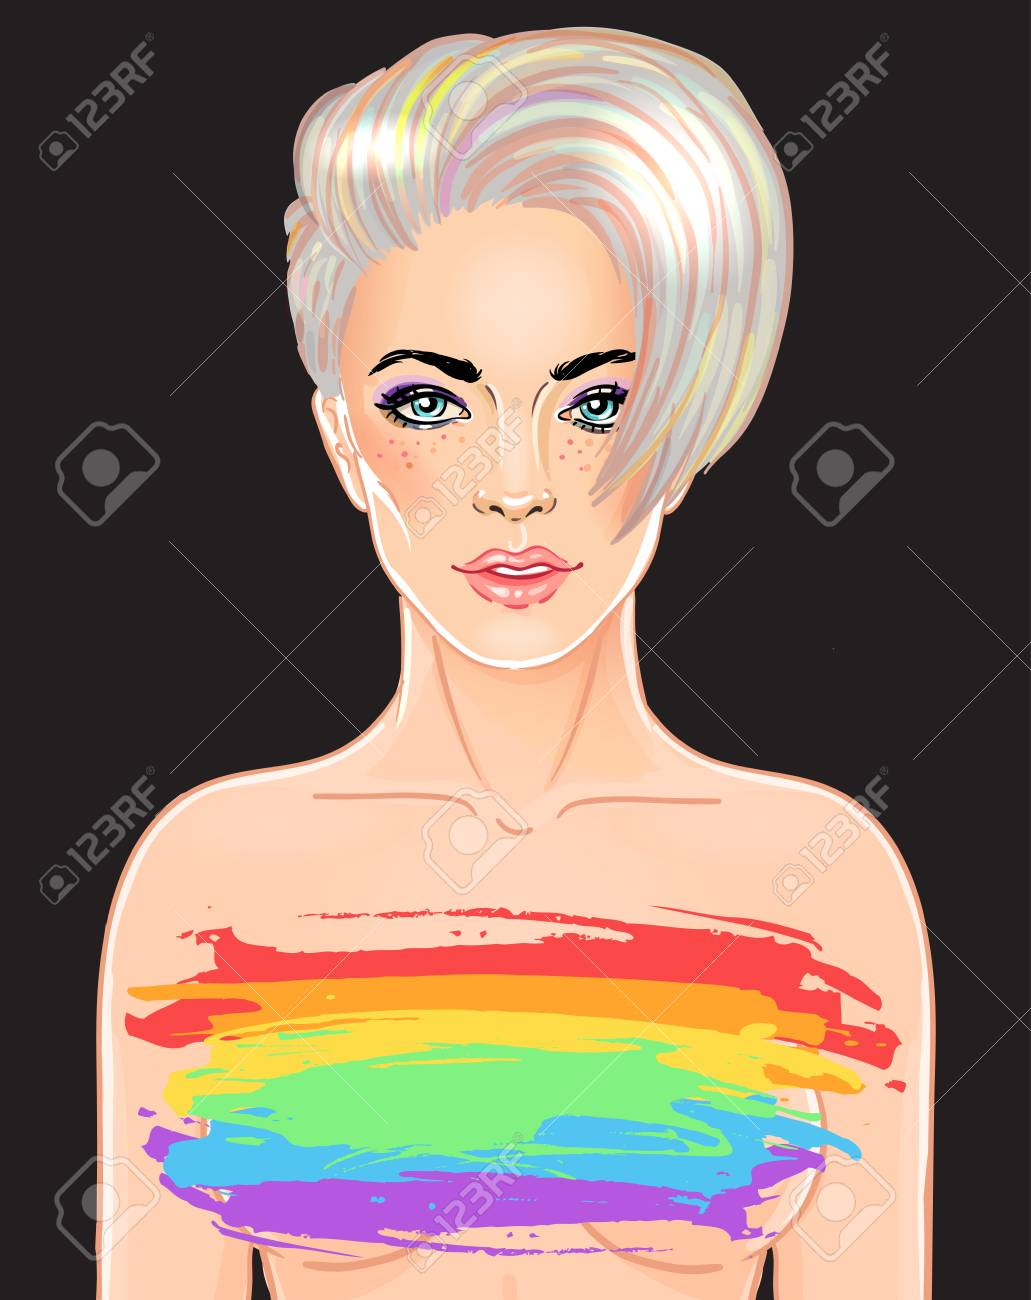 Portrait Of A Young Pretty Woman With Short Pixie Haircut Rainbow